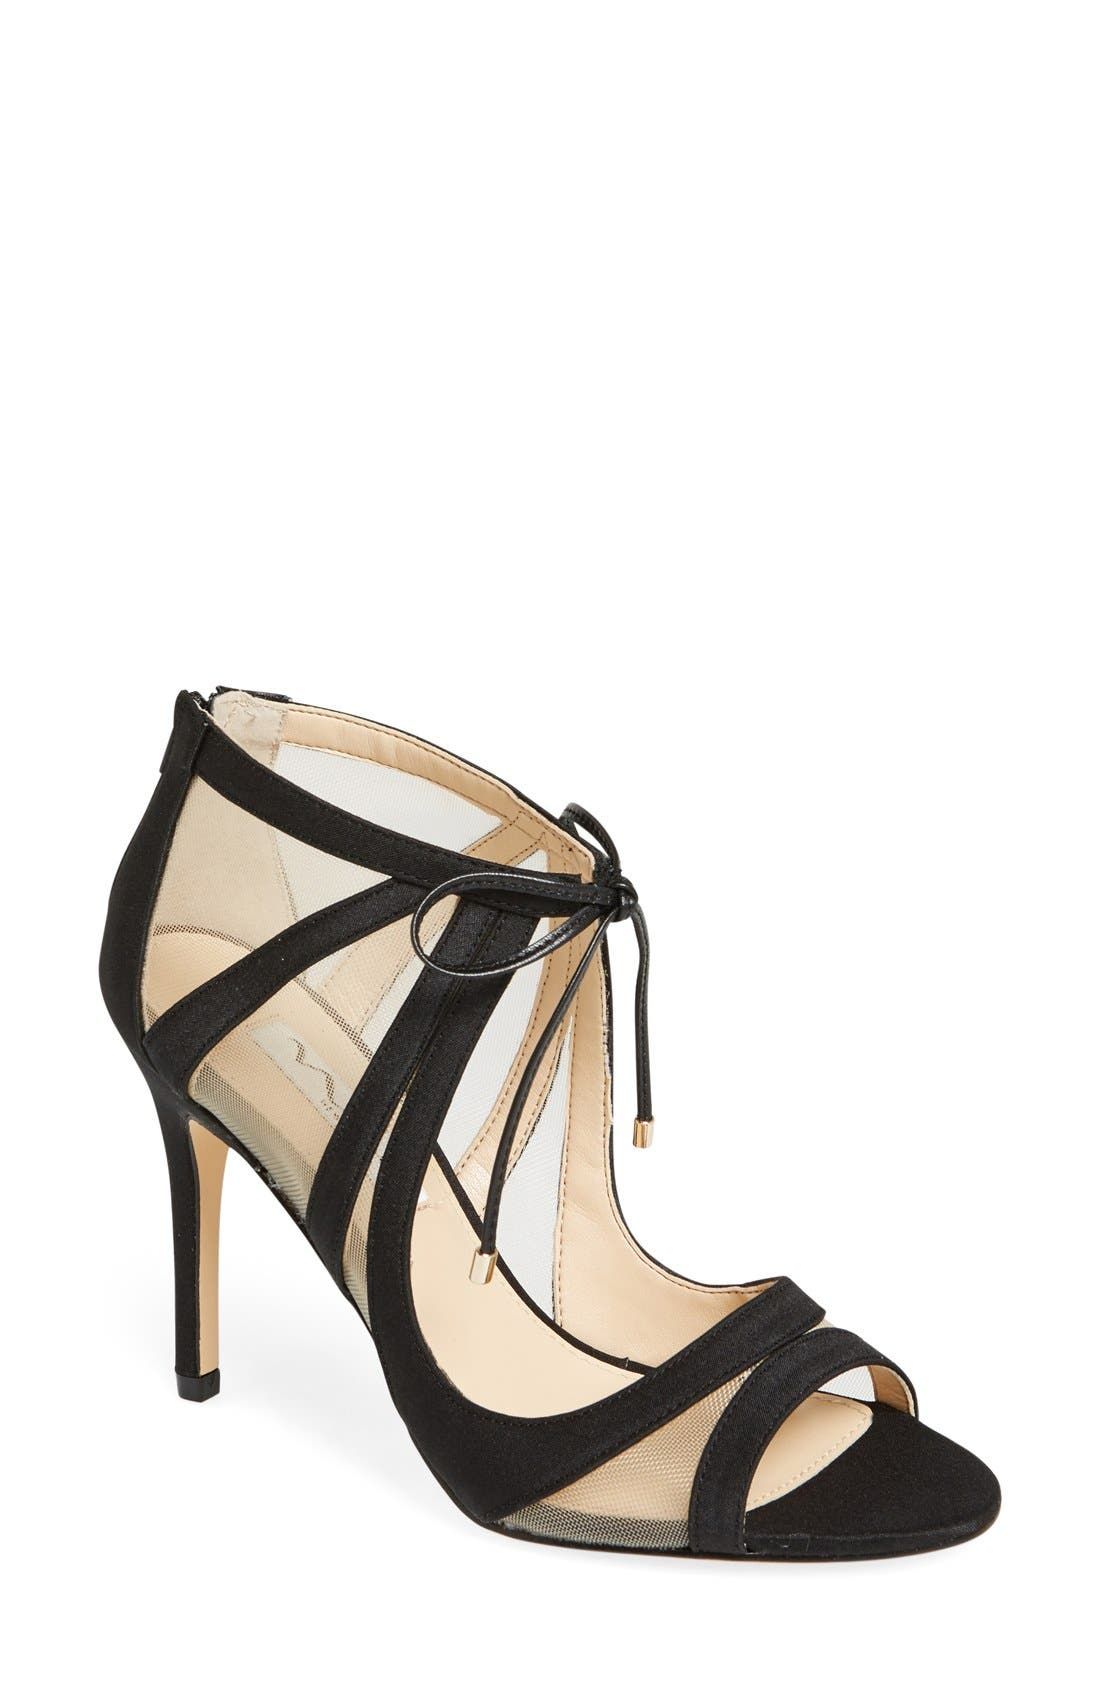 NINA, Cherie Illusion Sandal, Main thumbnail 1, color, BLACK SATIN/ NUDE MESH